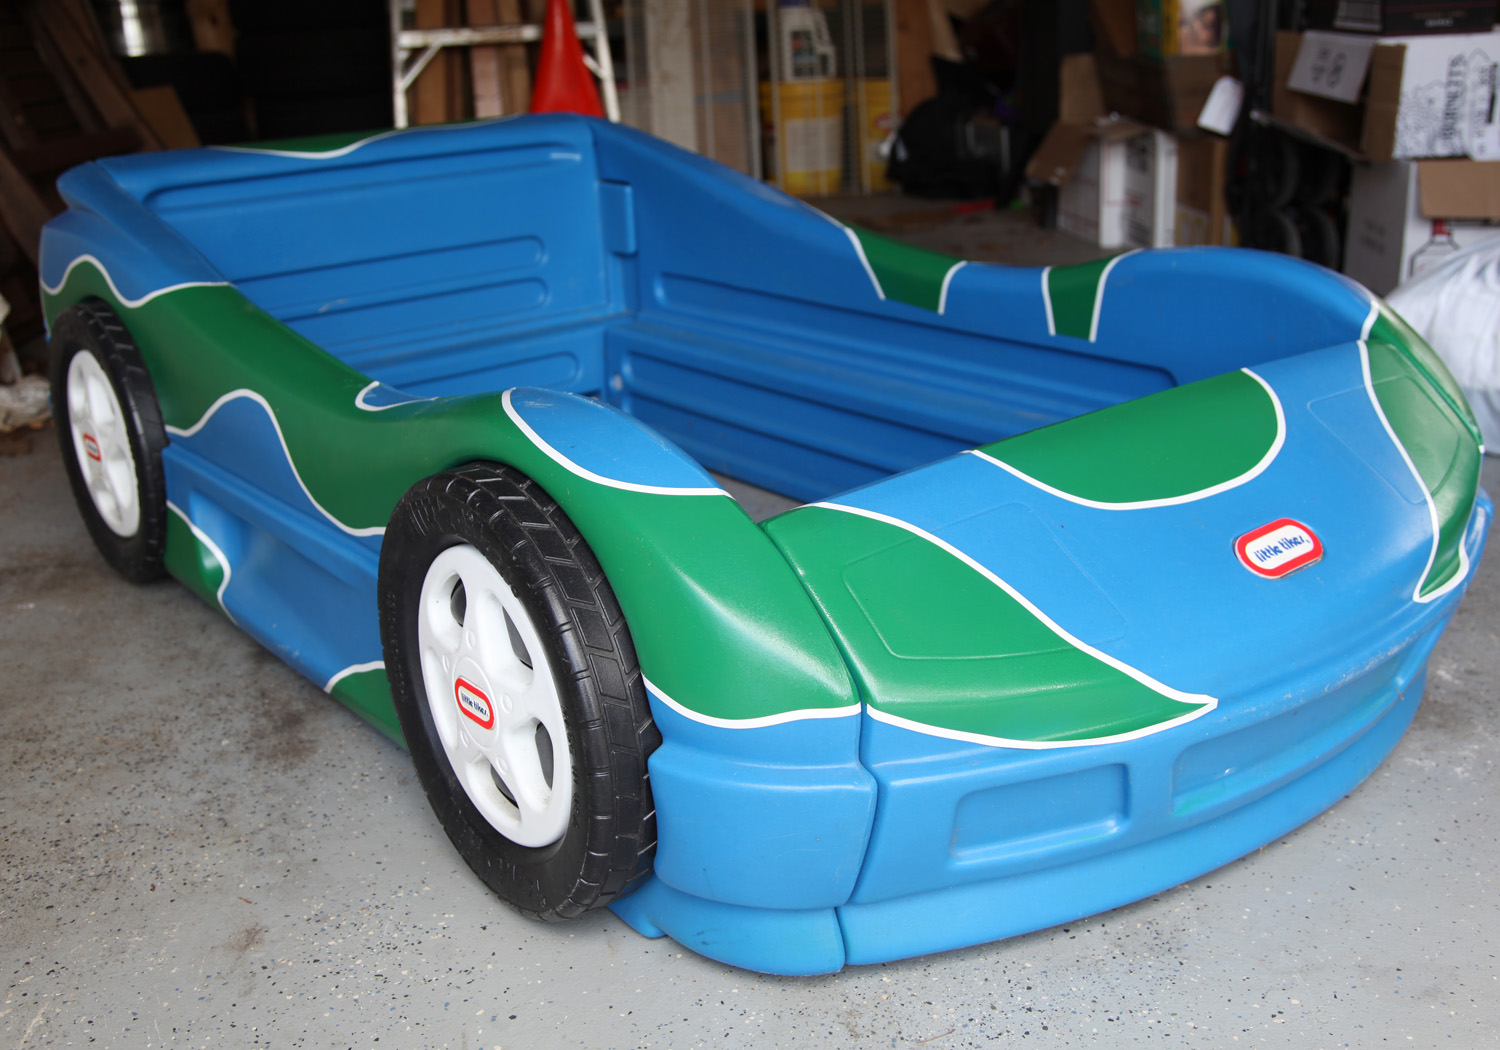 Hippie Car Bed w  Pin Striping. The Girl Wants A Car Bed  Part 1     Stately Kitsch